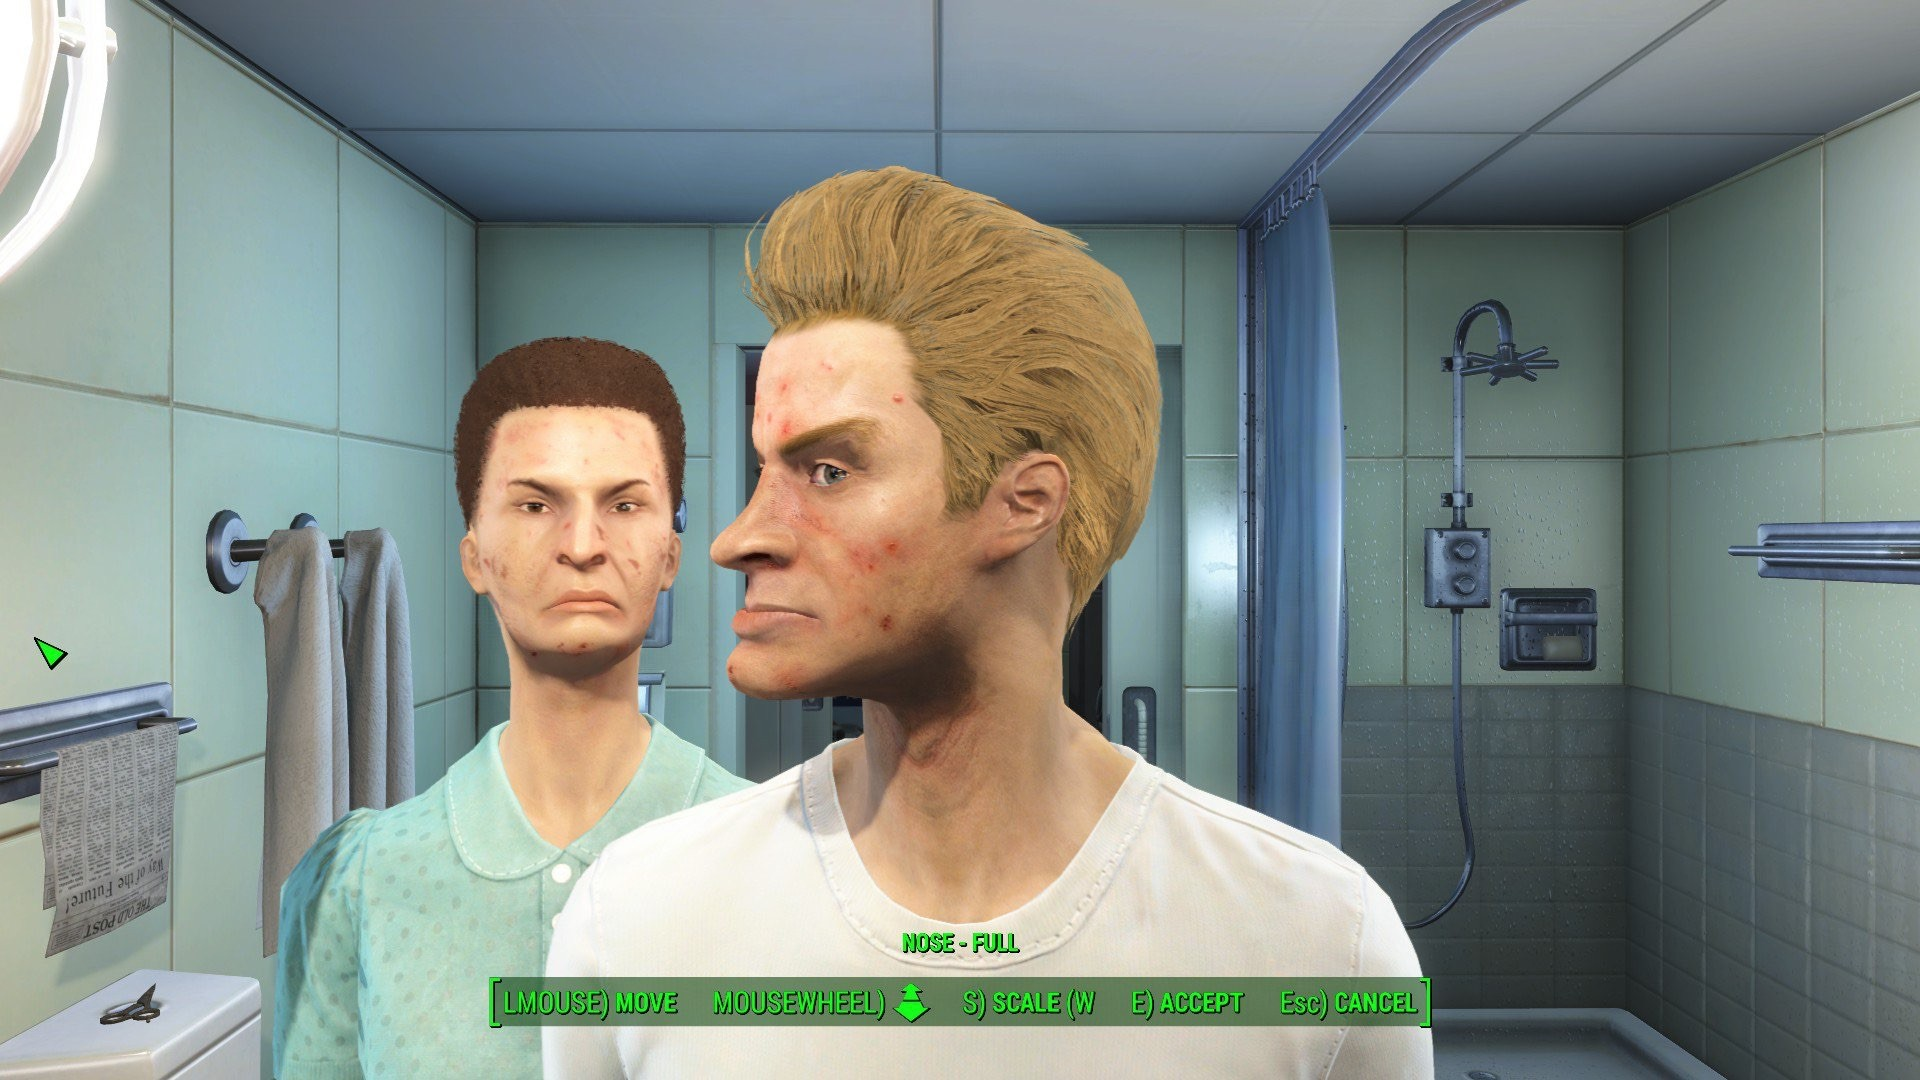 Beavis and Butt-Head in Fallout 4